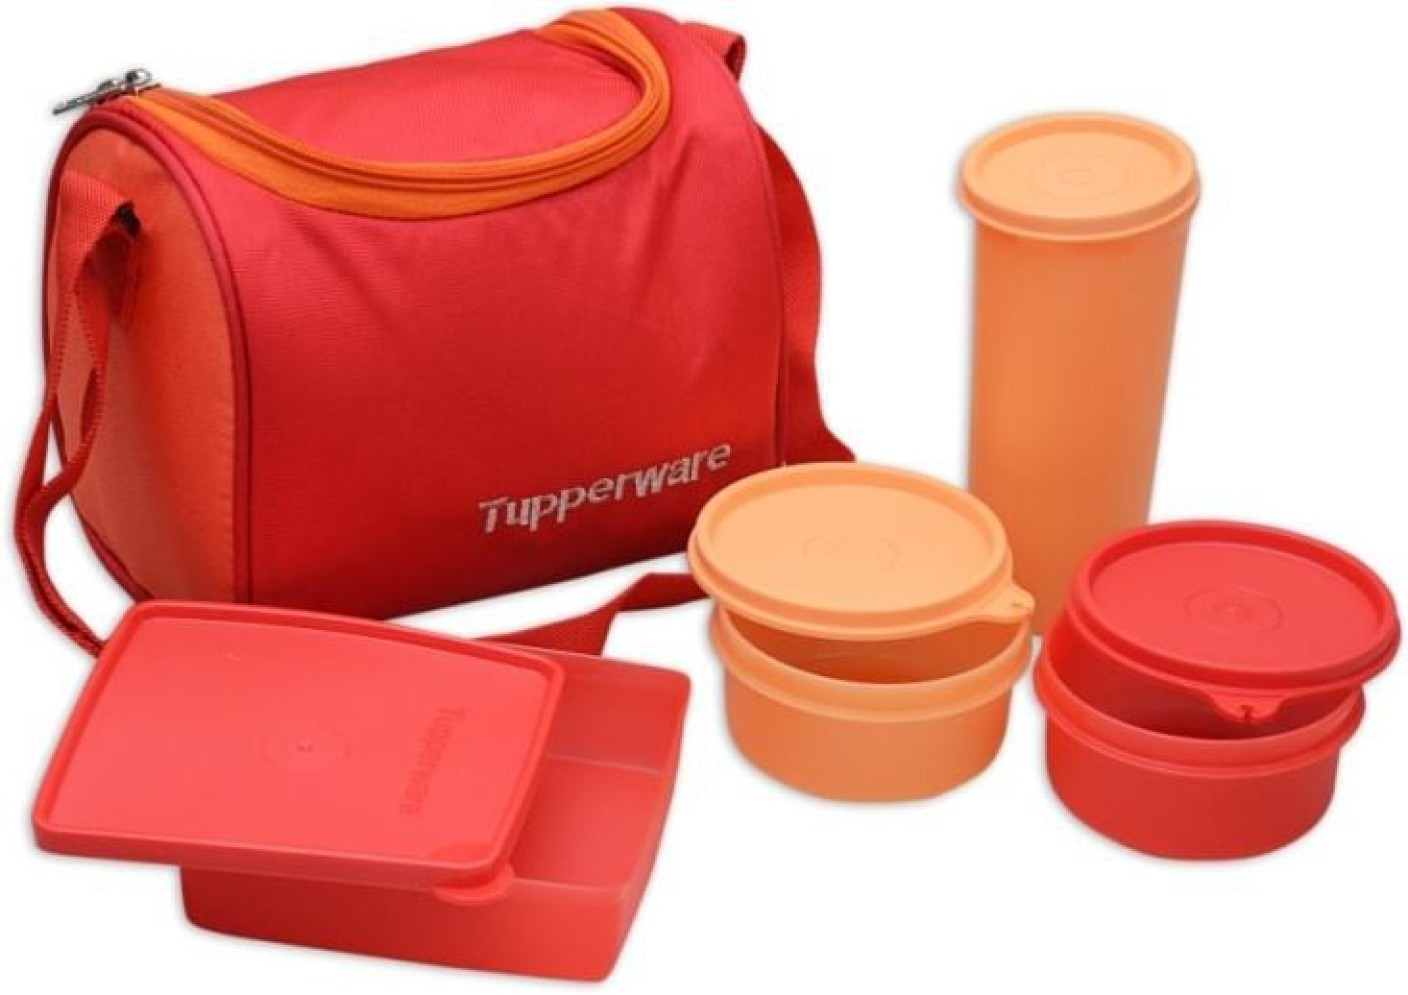 can you microwave tupperware is it